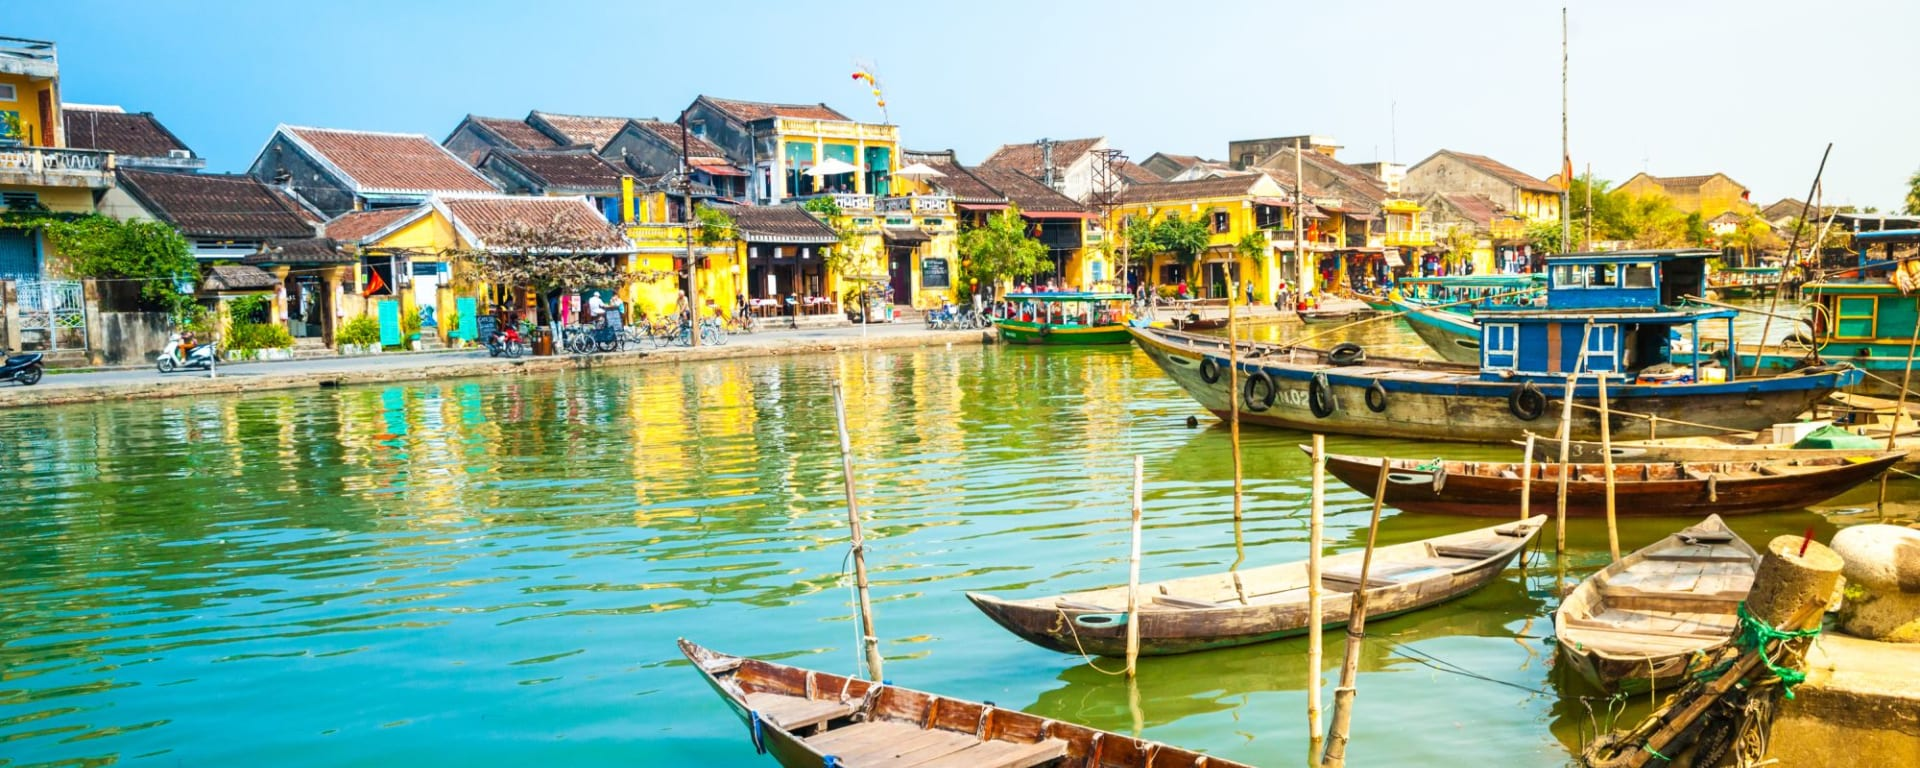 Vietnam für Geniesser ab Hanoi: Hoi An Traditional boats in front of ancient architecture